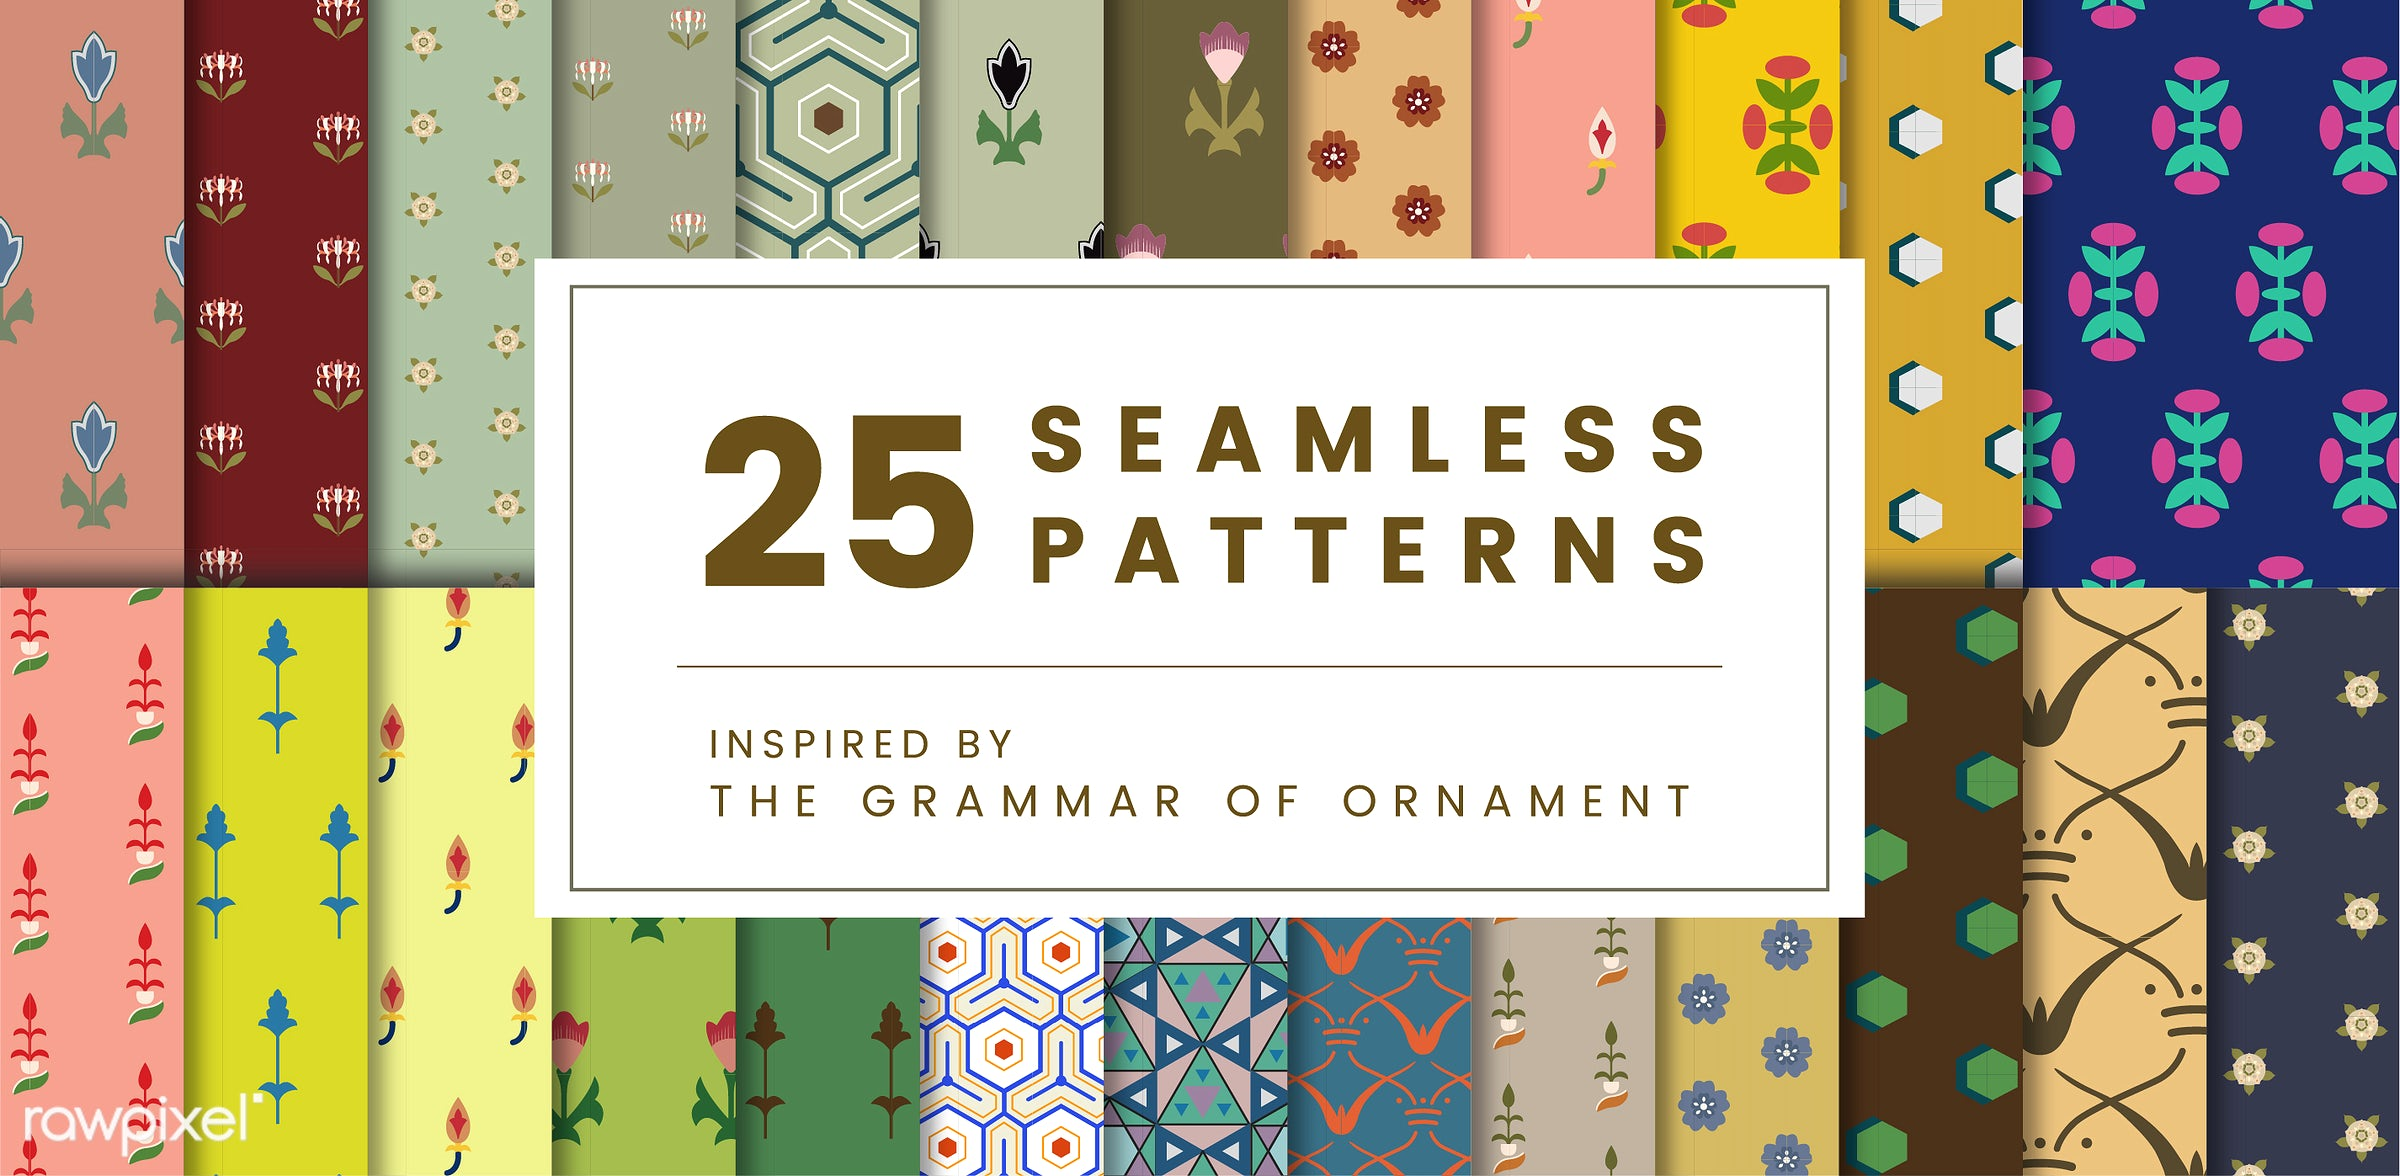 Set of 25 vintage patterns inspired by The Grammar of Ornament  - pattern, vintage, seamless, modern, texture, textile,...